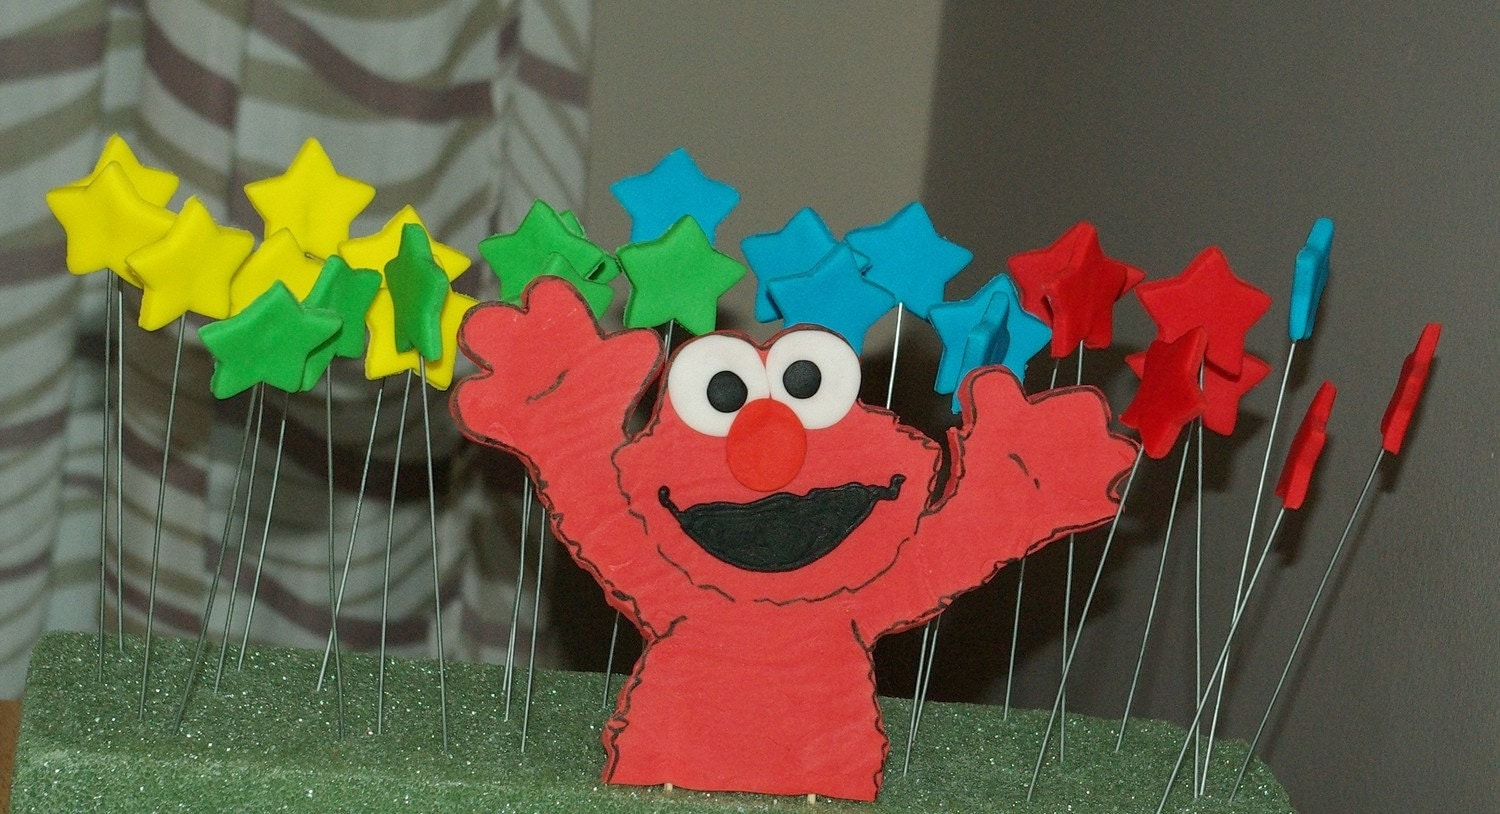 Elmo Cake Toppers Decorations : Elmo Inspired Fondant Cake Toppers Complete Set by 1STOPPARTY